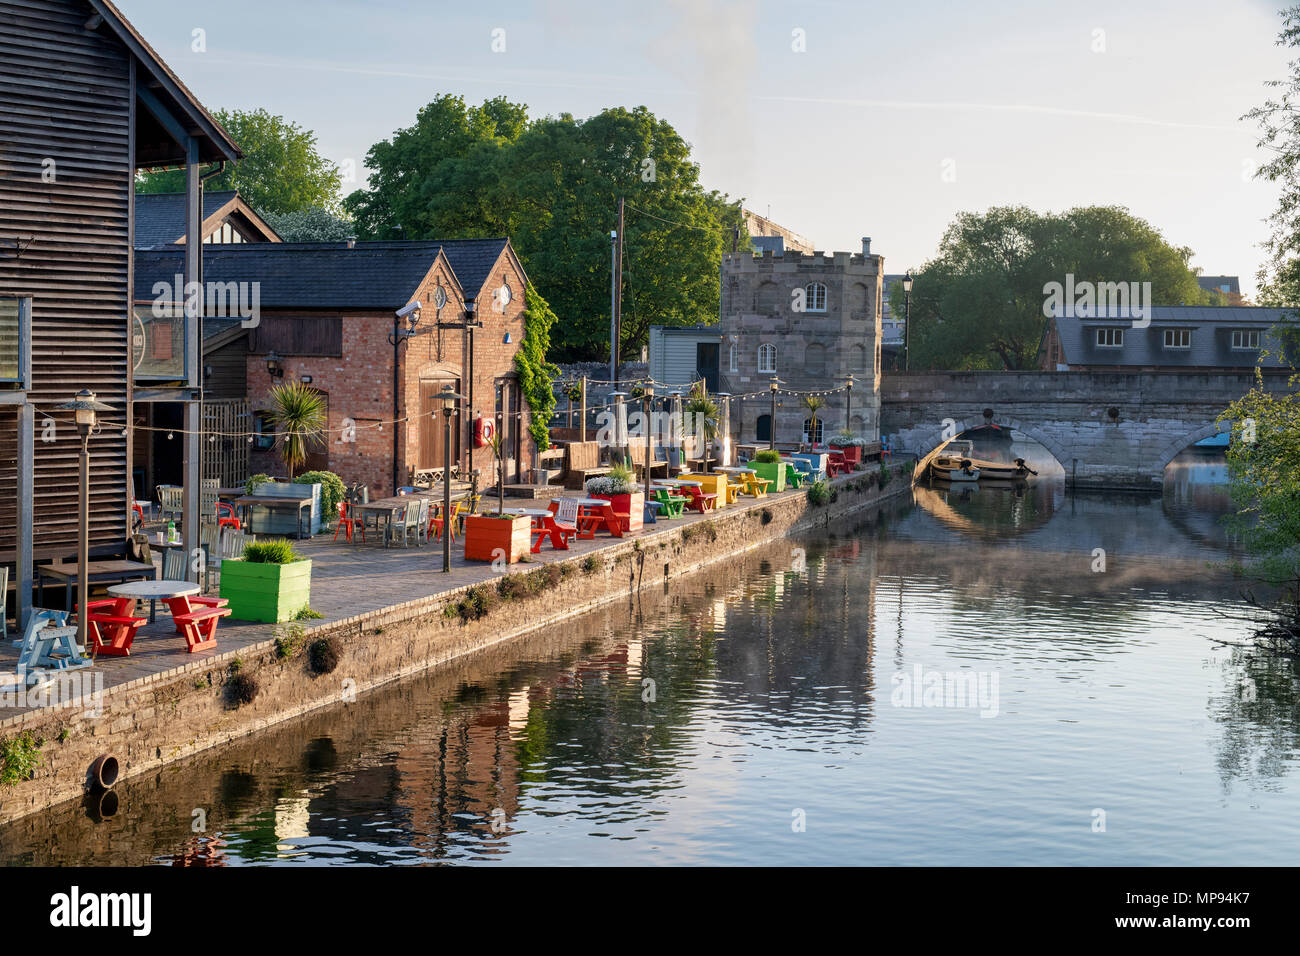 Stratford Upon Avon in the early morning spring sunlight. Stratford Upon Avon, Warwickshire, England - Stock Image